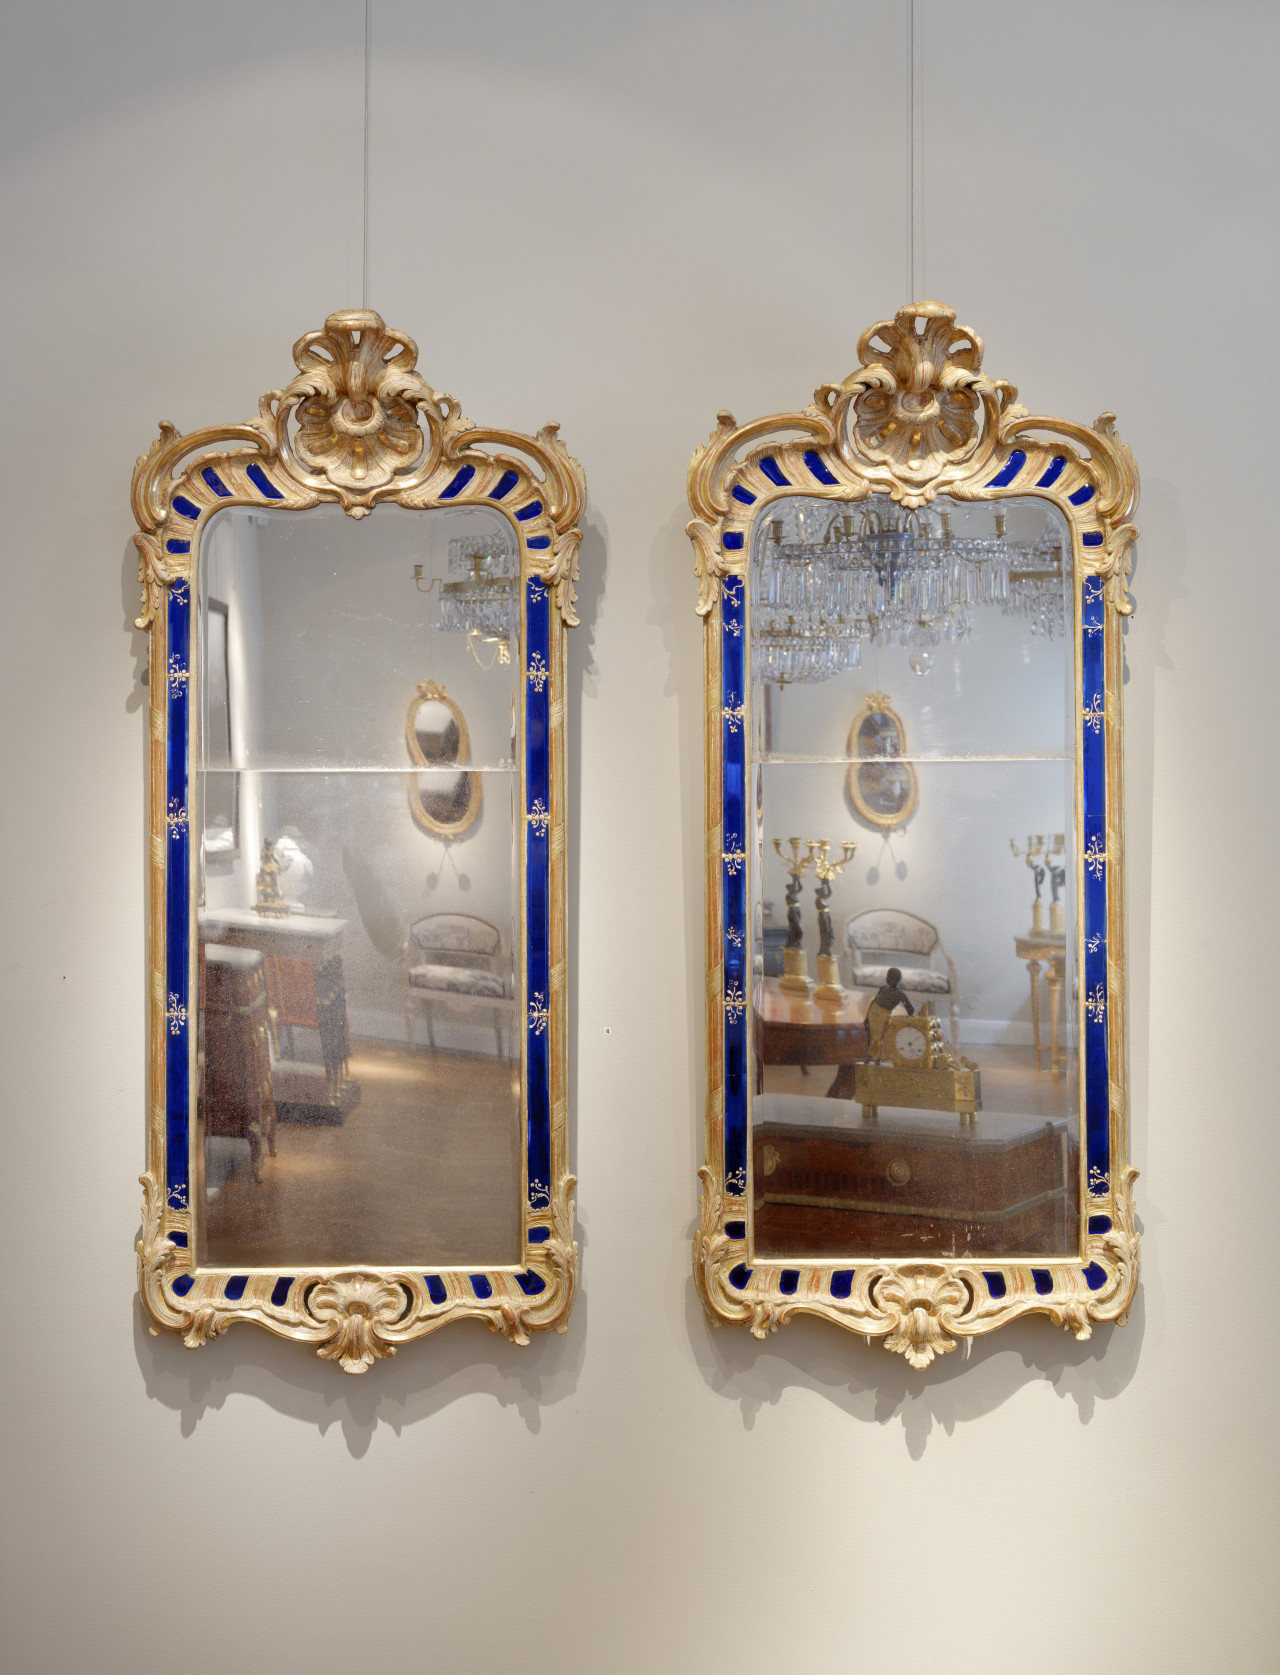 A very important pair of Swedish rococo mirrors by Ehrhart Göbel dated 1760, Stockholm, 155x67 cm